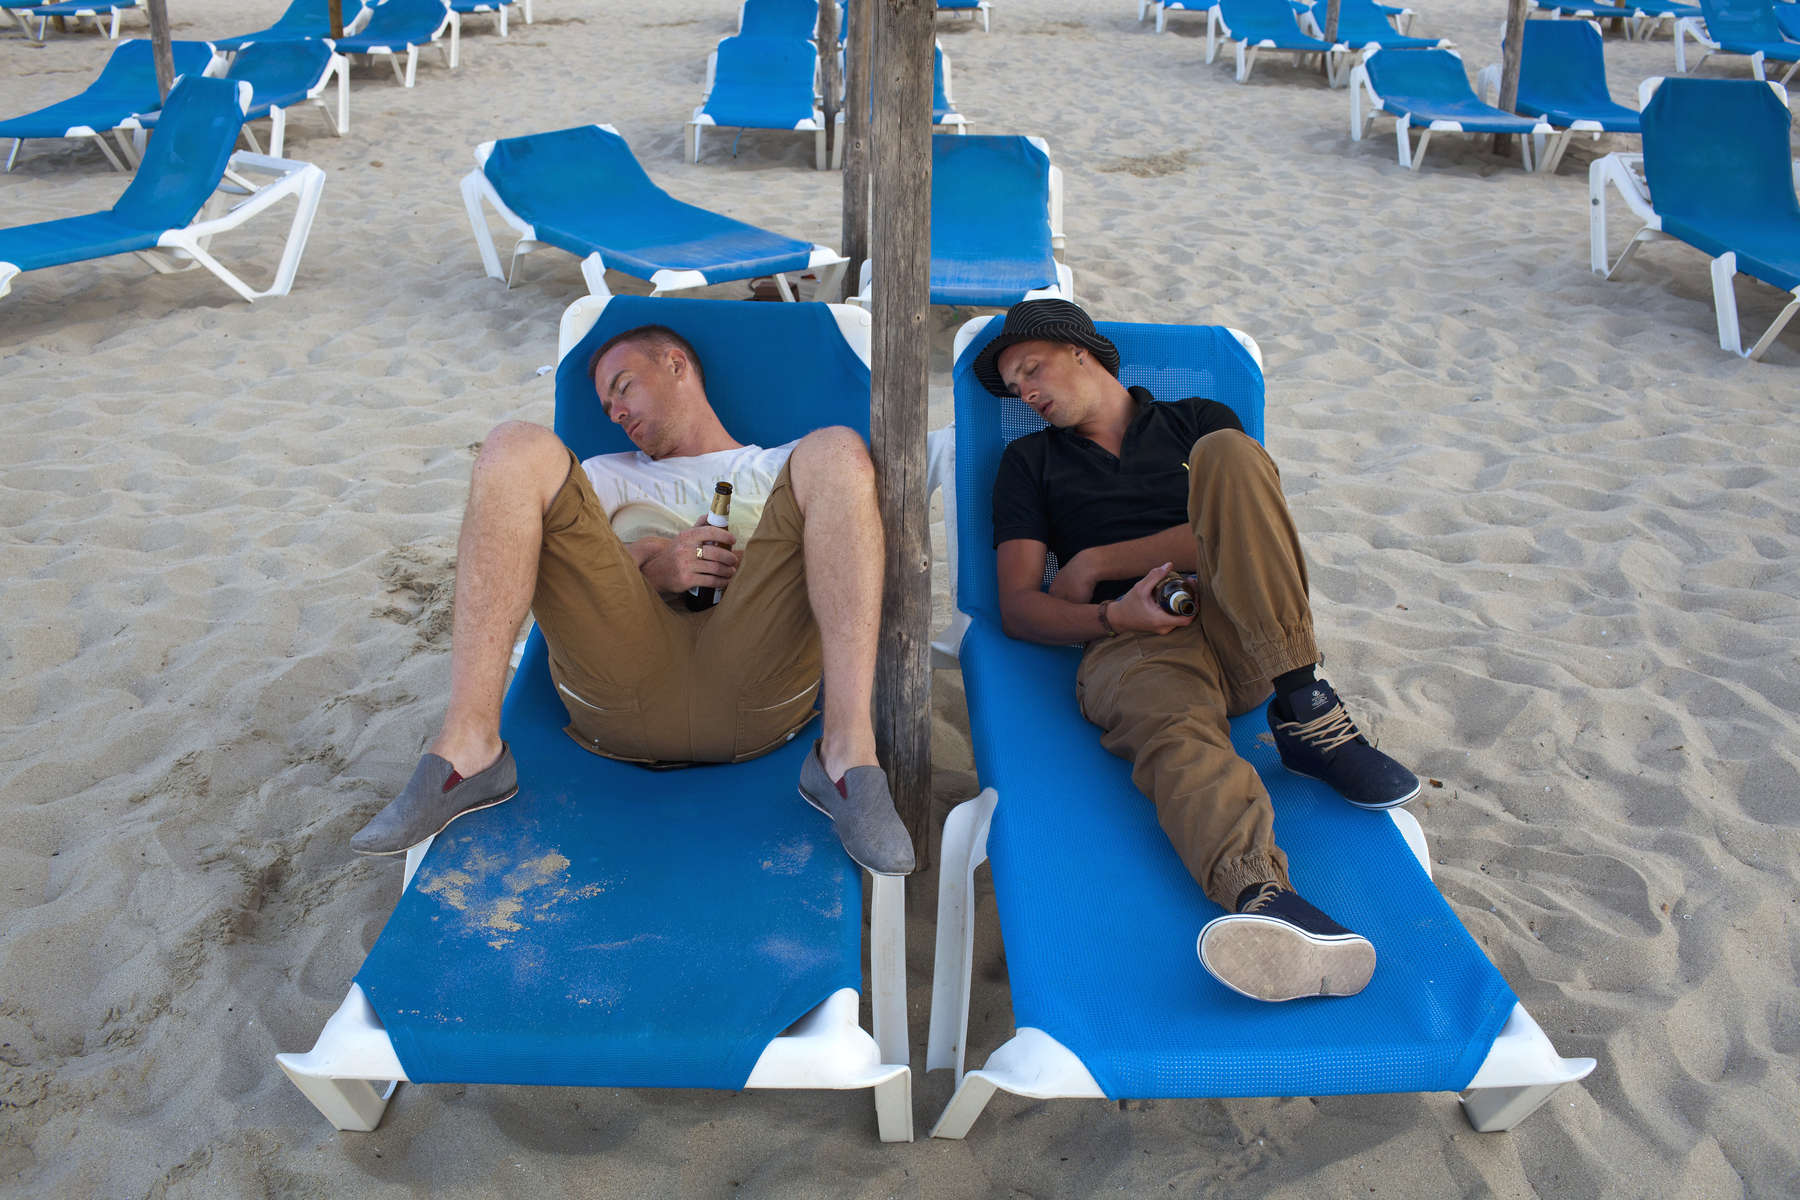 06.58 two British men hold their bottles of San Miguel beer as they sleep of the nights excesses on sun beds at the beach at Magaluf, Majorca.